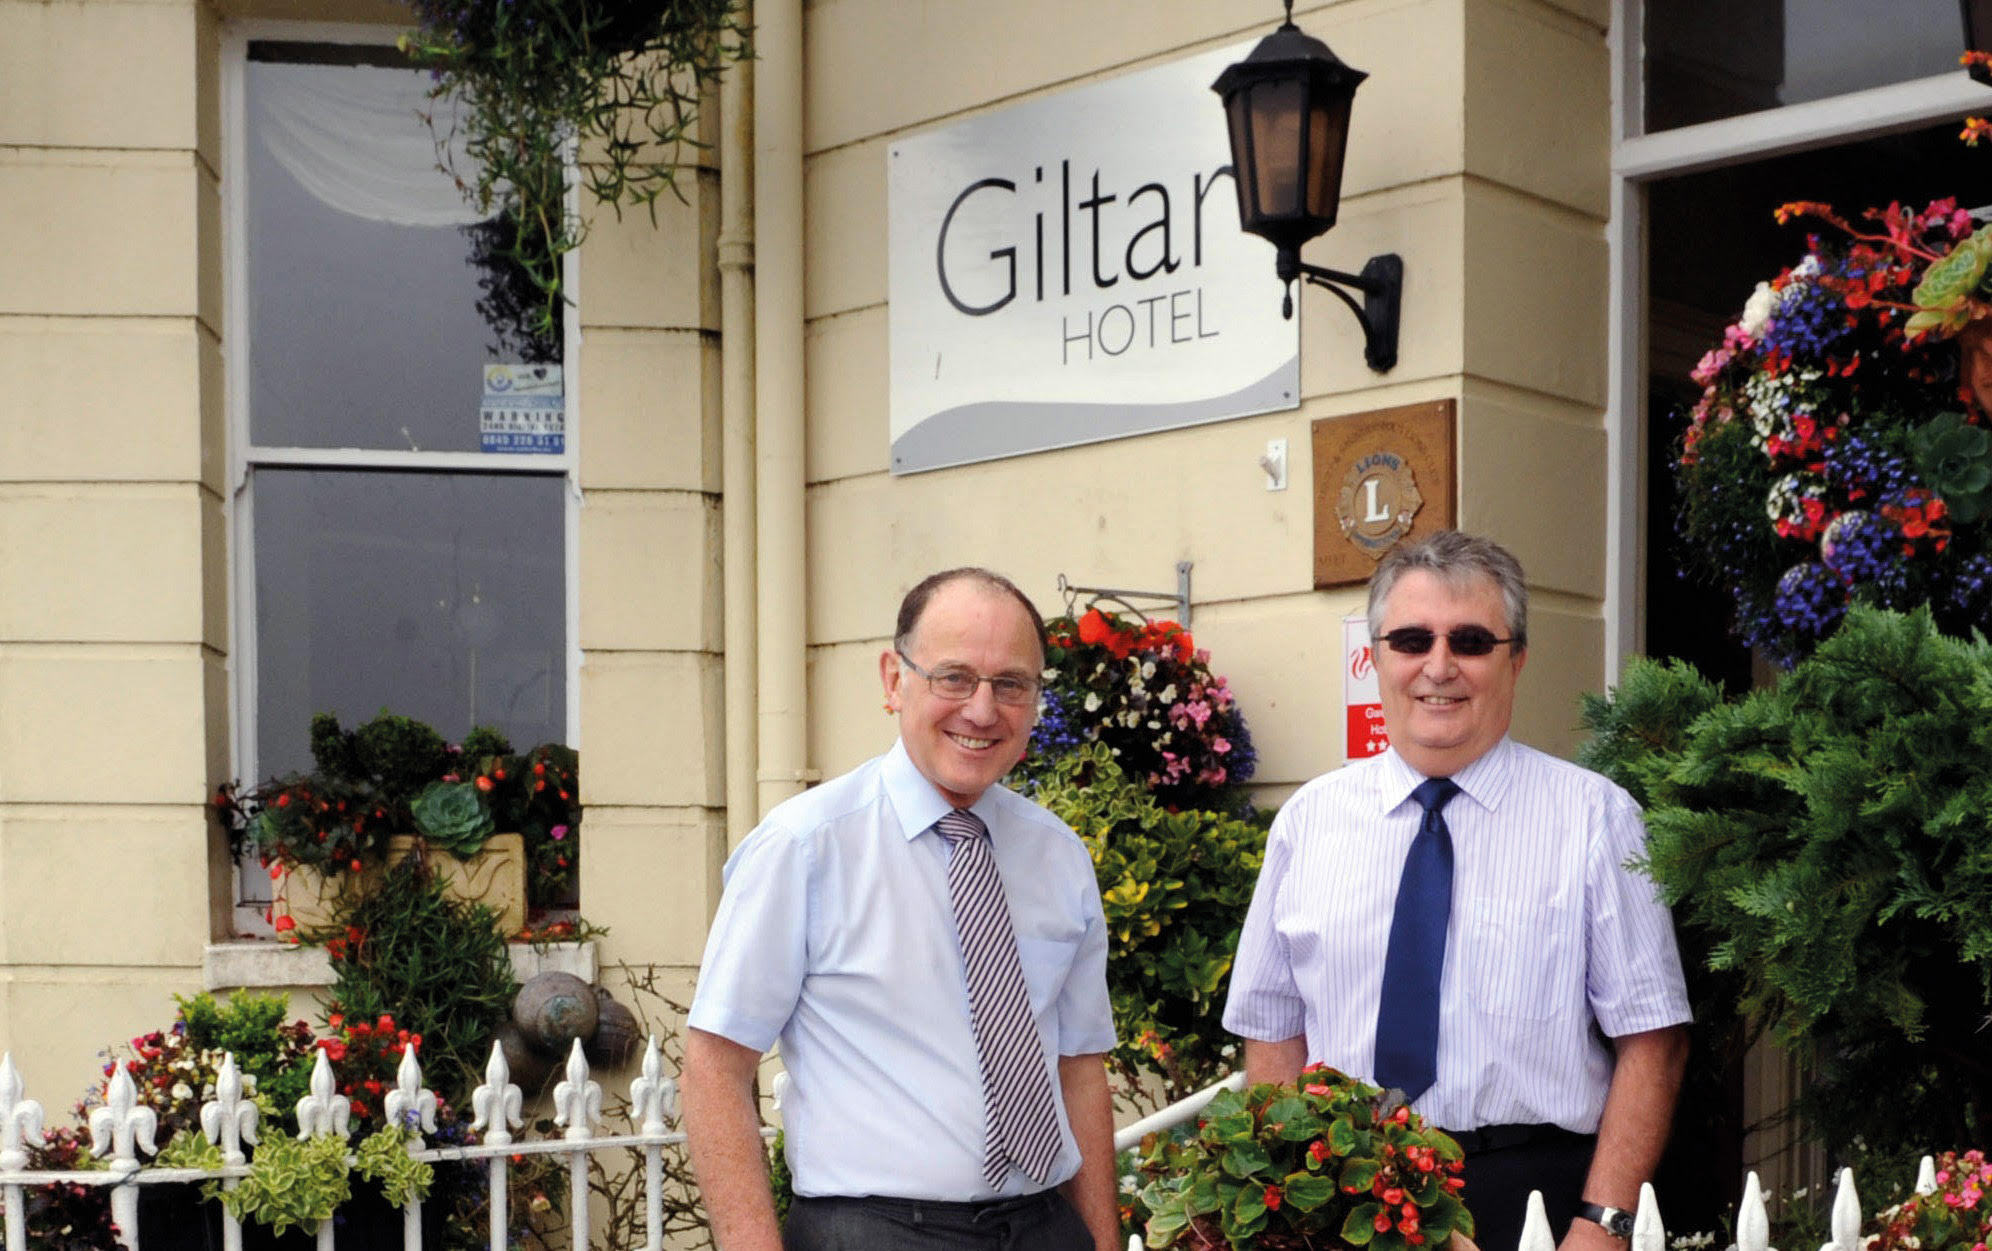 Pictured, from left: Giltar Hotel owners Patrick Jenkins and Malcolm Brace.